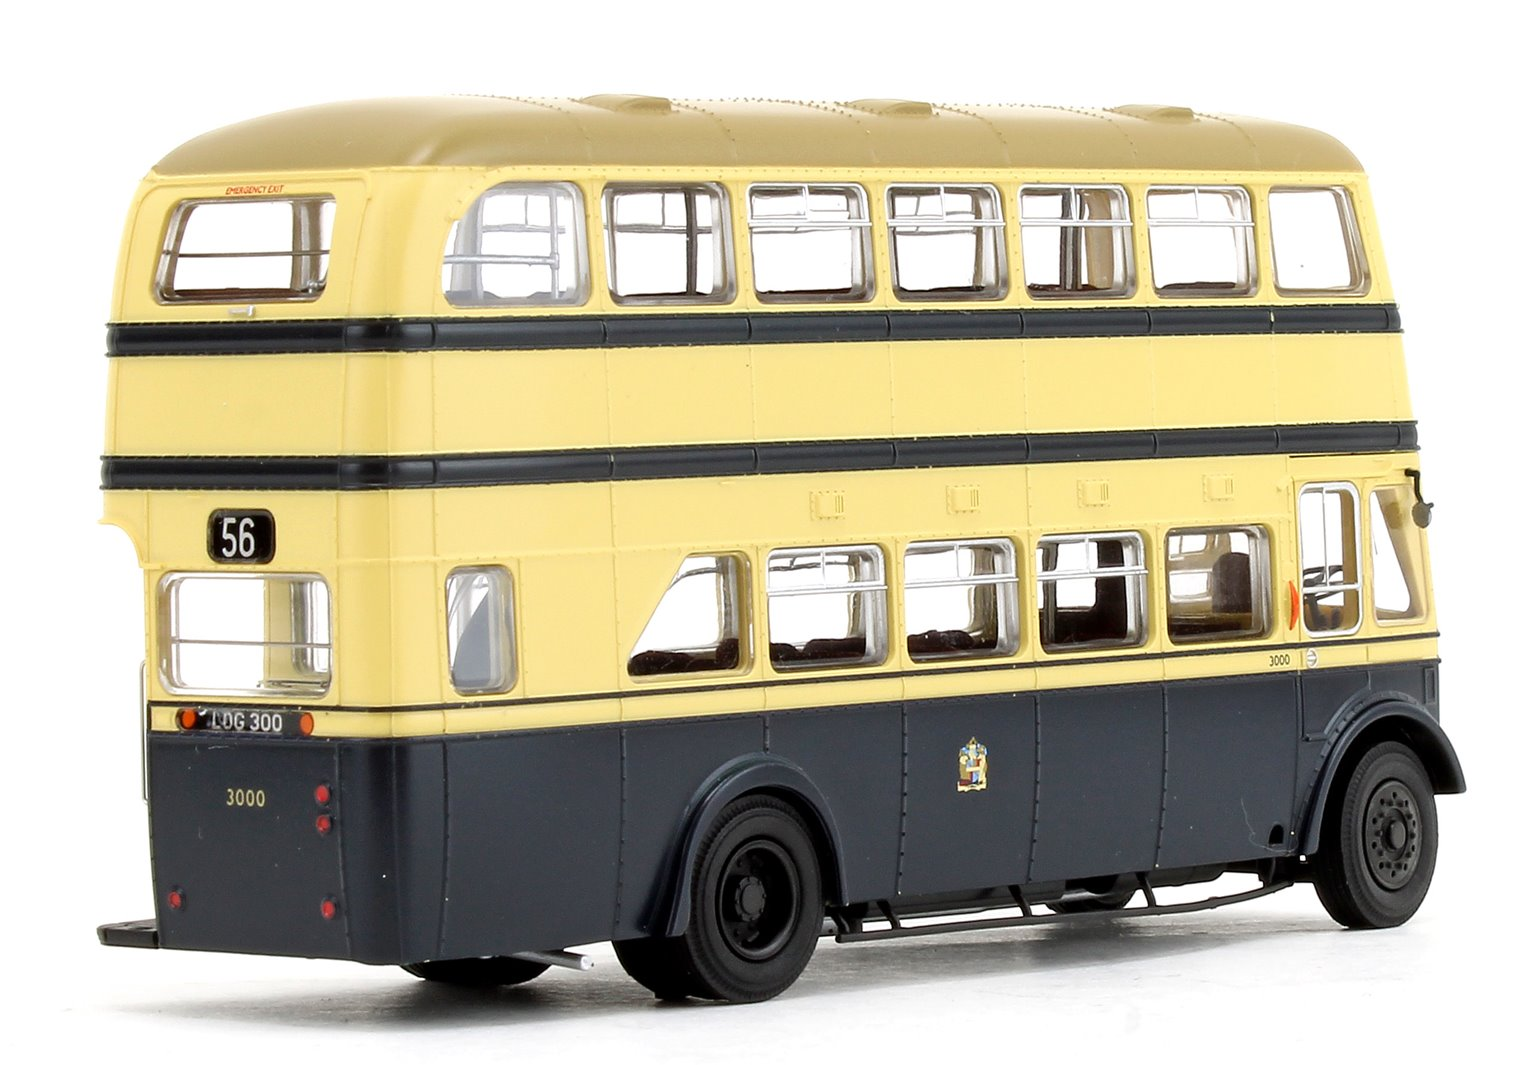 Birmingham City Transport (BCT) Blue/Cream with Khaki Roof Guy Arab IV with Metro-Cammell body - Fleet No.3000 - 56 Castle Bromwich (Newport Road) - Licence No. LOG 300 (Black Numbers)